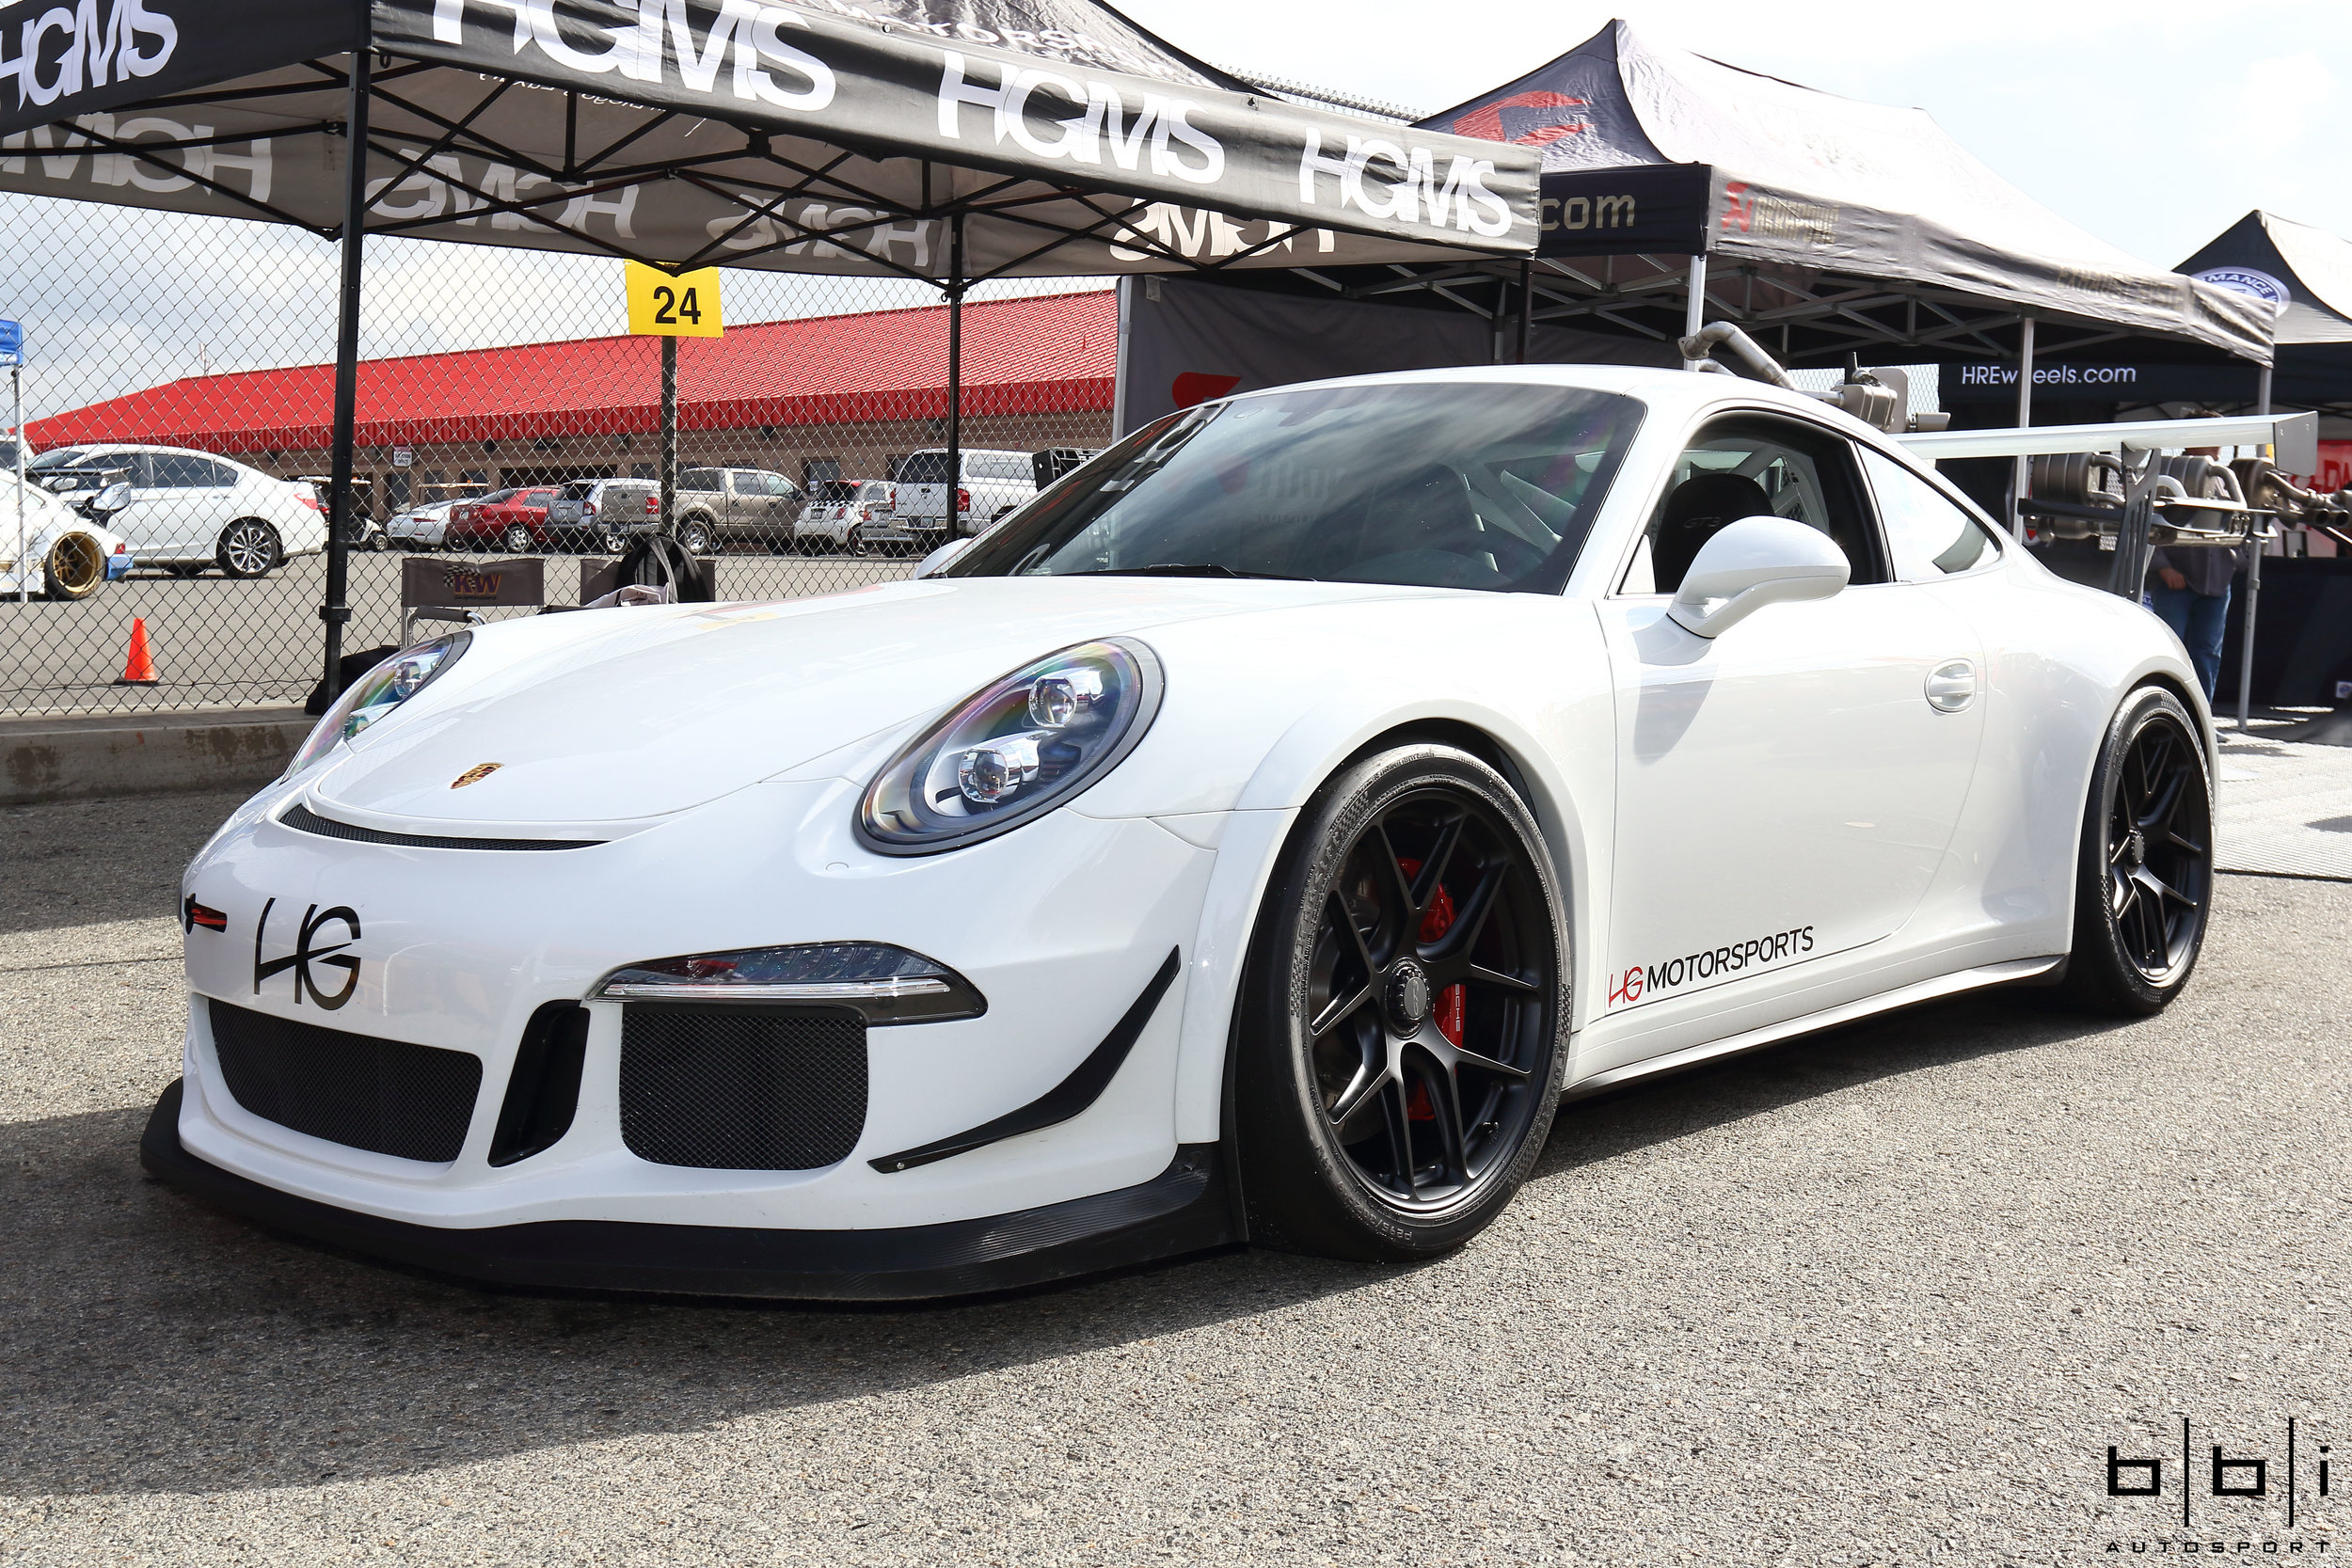 HG Motorsports 991 GT3 build with our complete BBi StreetCup Roll Bar, Suspension, and Cup Wing Setup